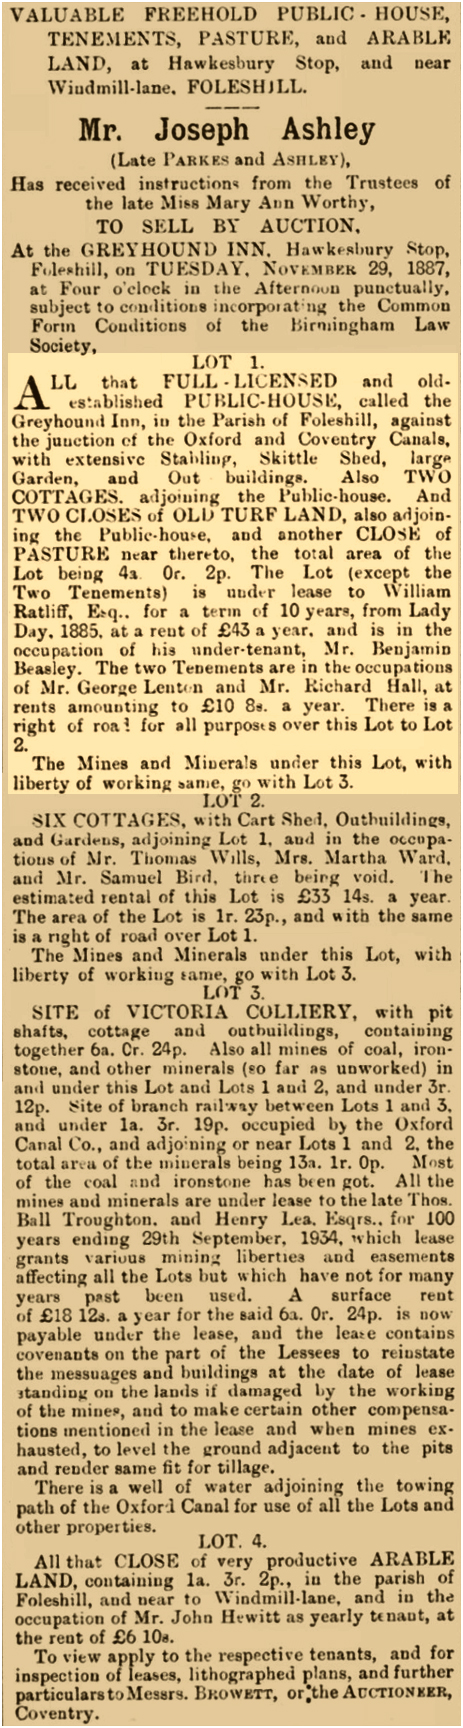 Foleshill : Auction Sale of The Greyhound at Hawkesbury Stop [1887]